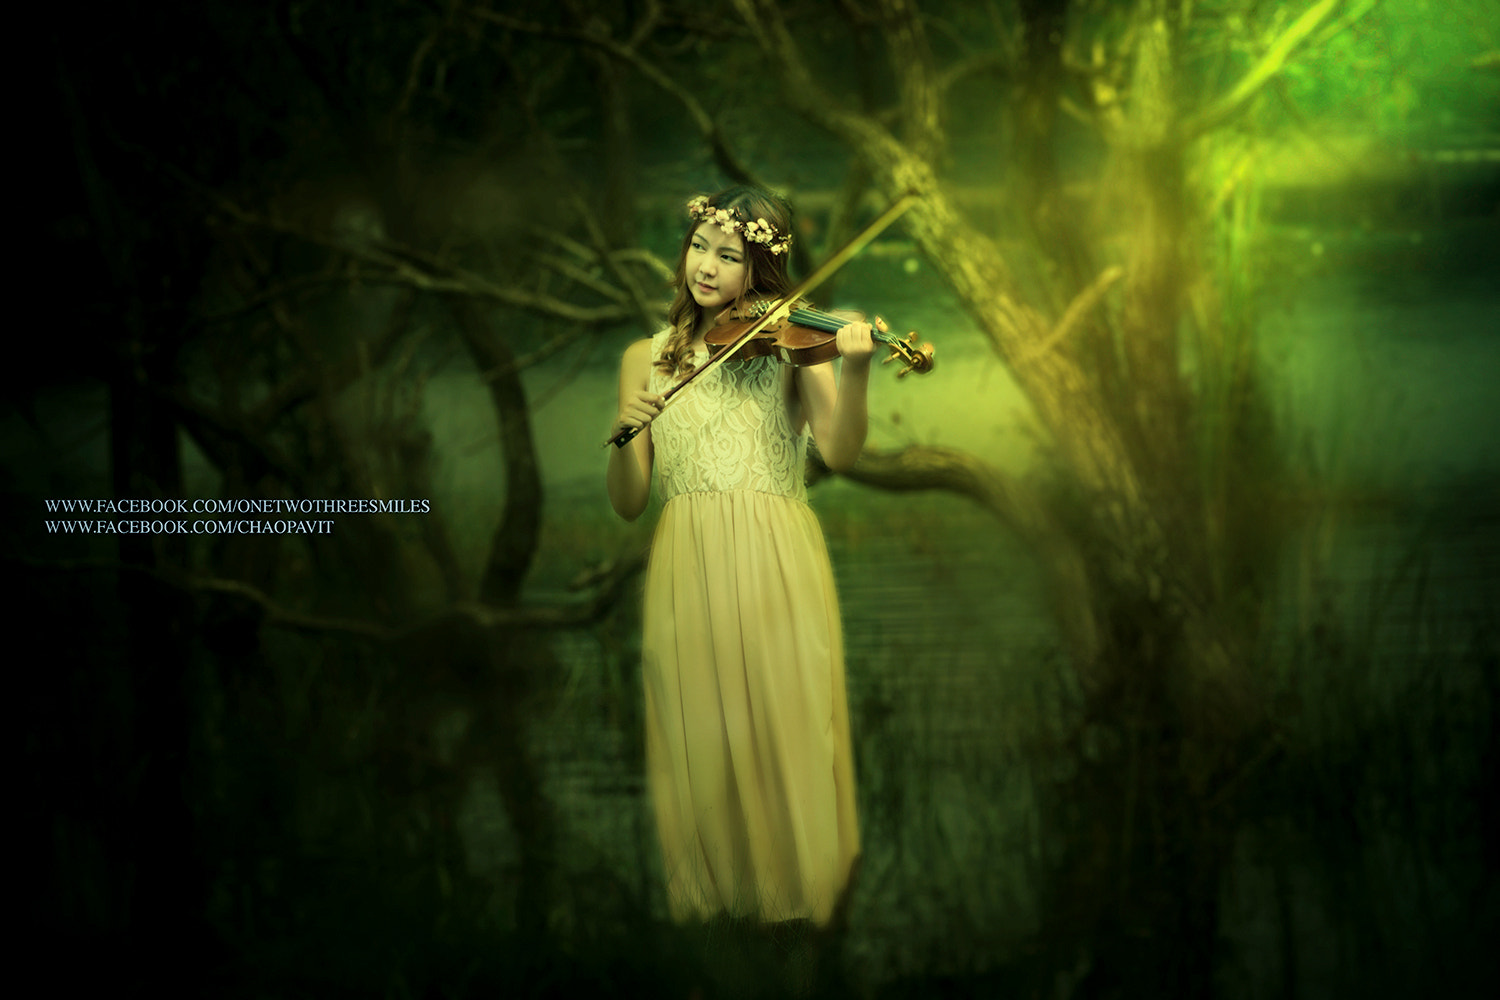 Photograph woman with violin by Chao Pavit on 500px